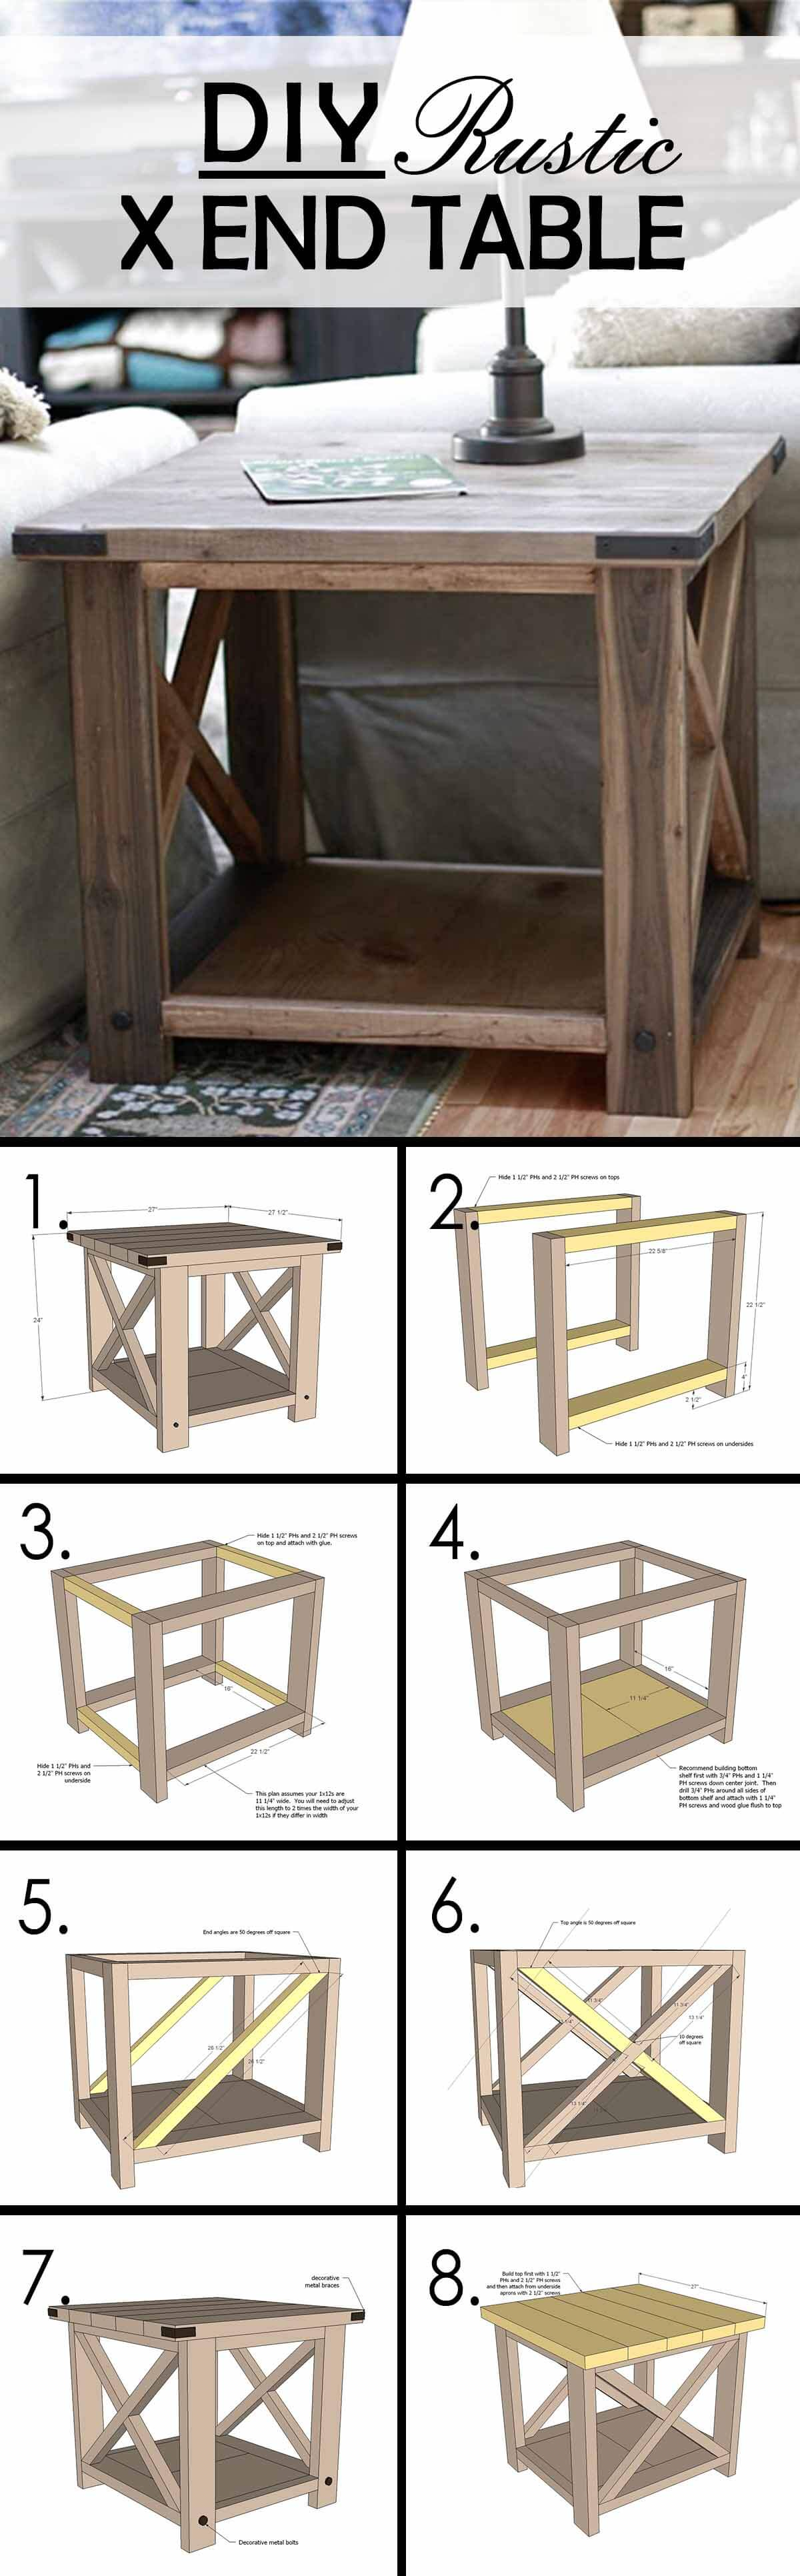 best diy farmhouse coffee table ideas and designs for homebnc style accent build your own rustic cube end tables white wicker furniture mirrored rectangular outside bar small club